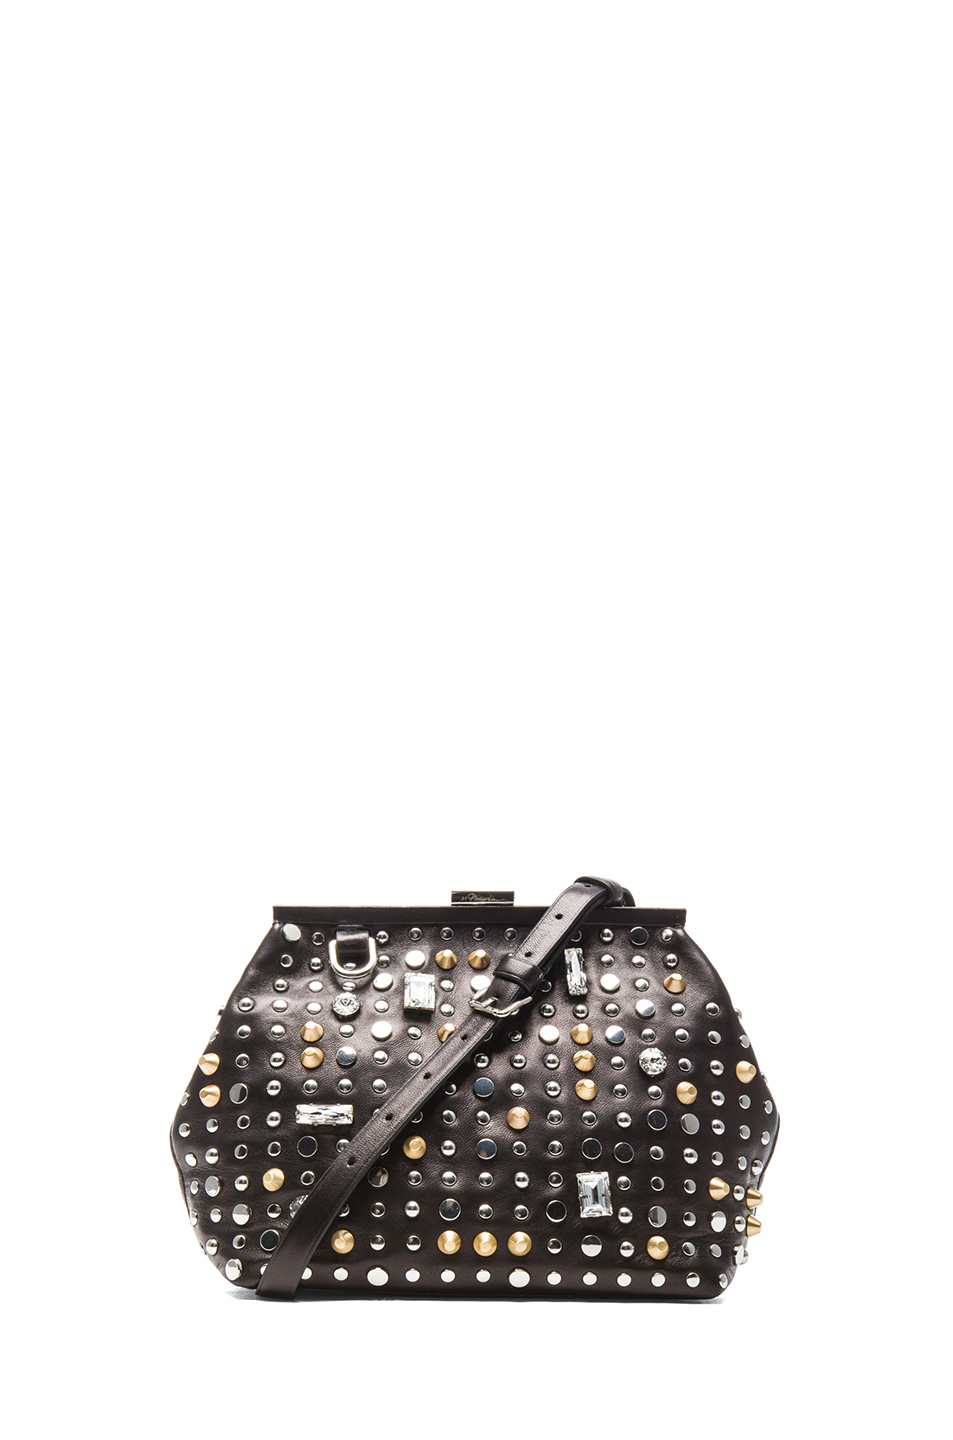 3.1 phillip lim|Frame Clutch in Black